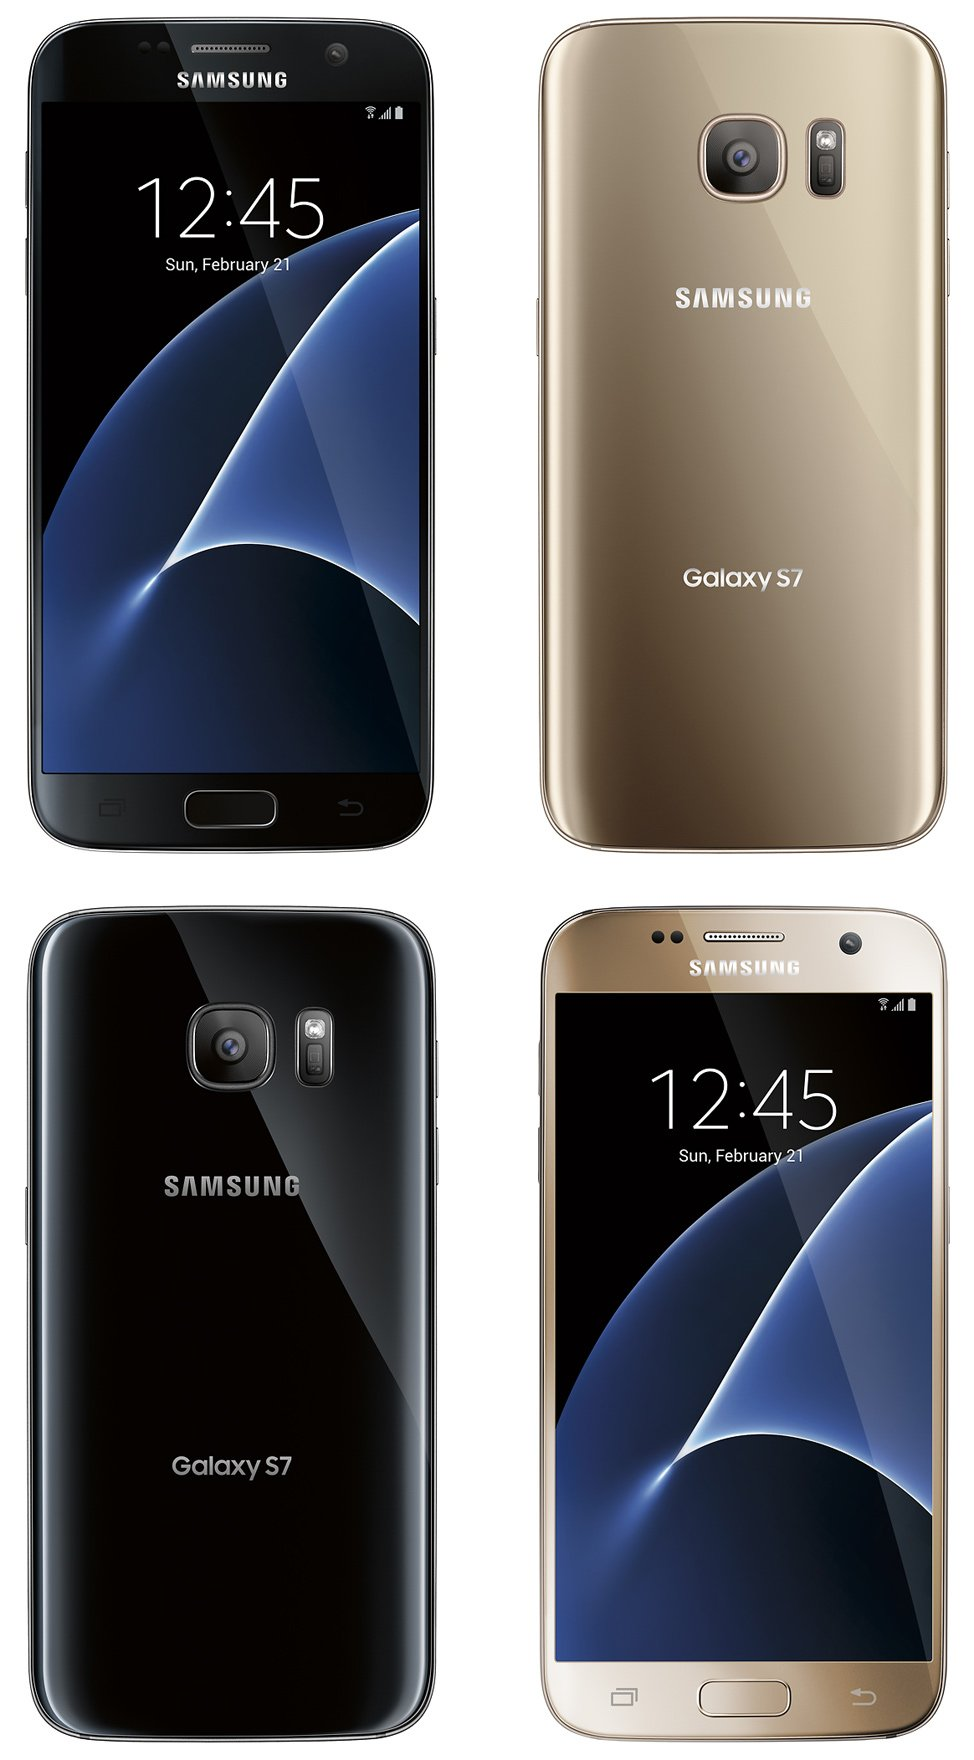 Samsung Galaxy S7 Press Pictures Show The True Beauty Of The